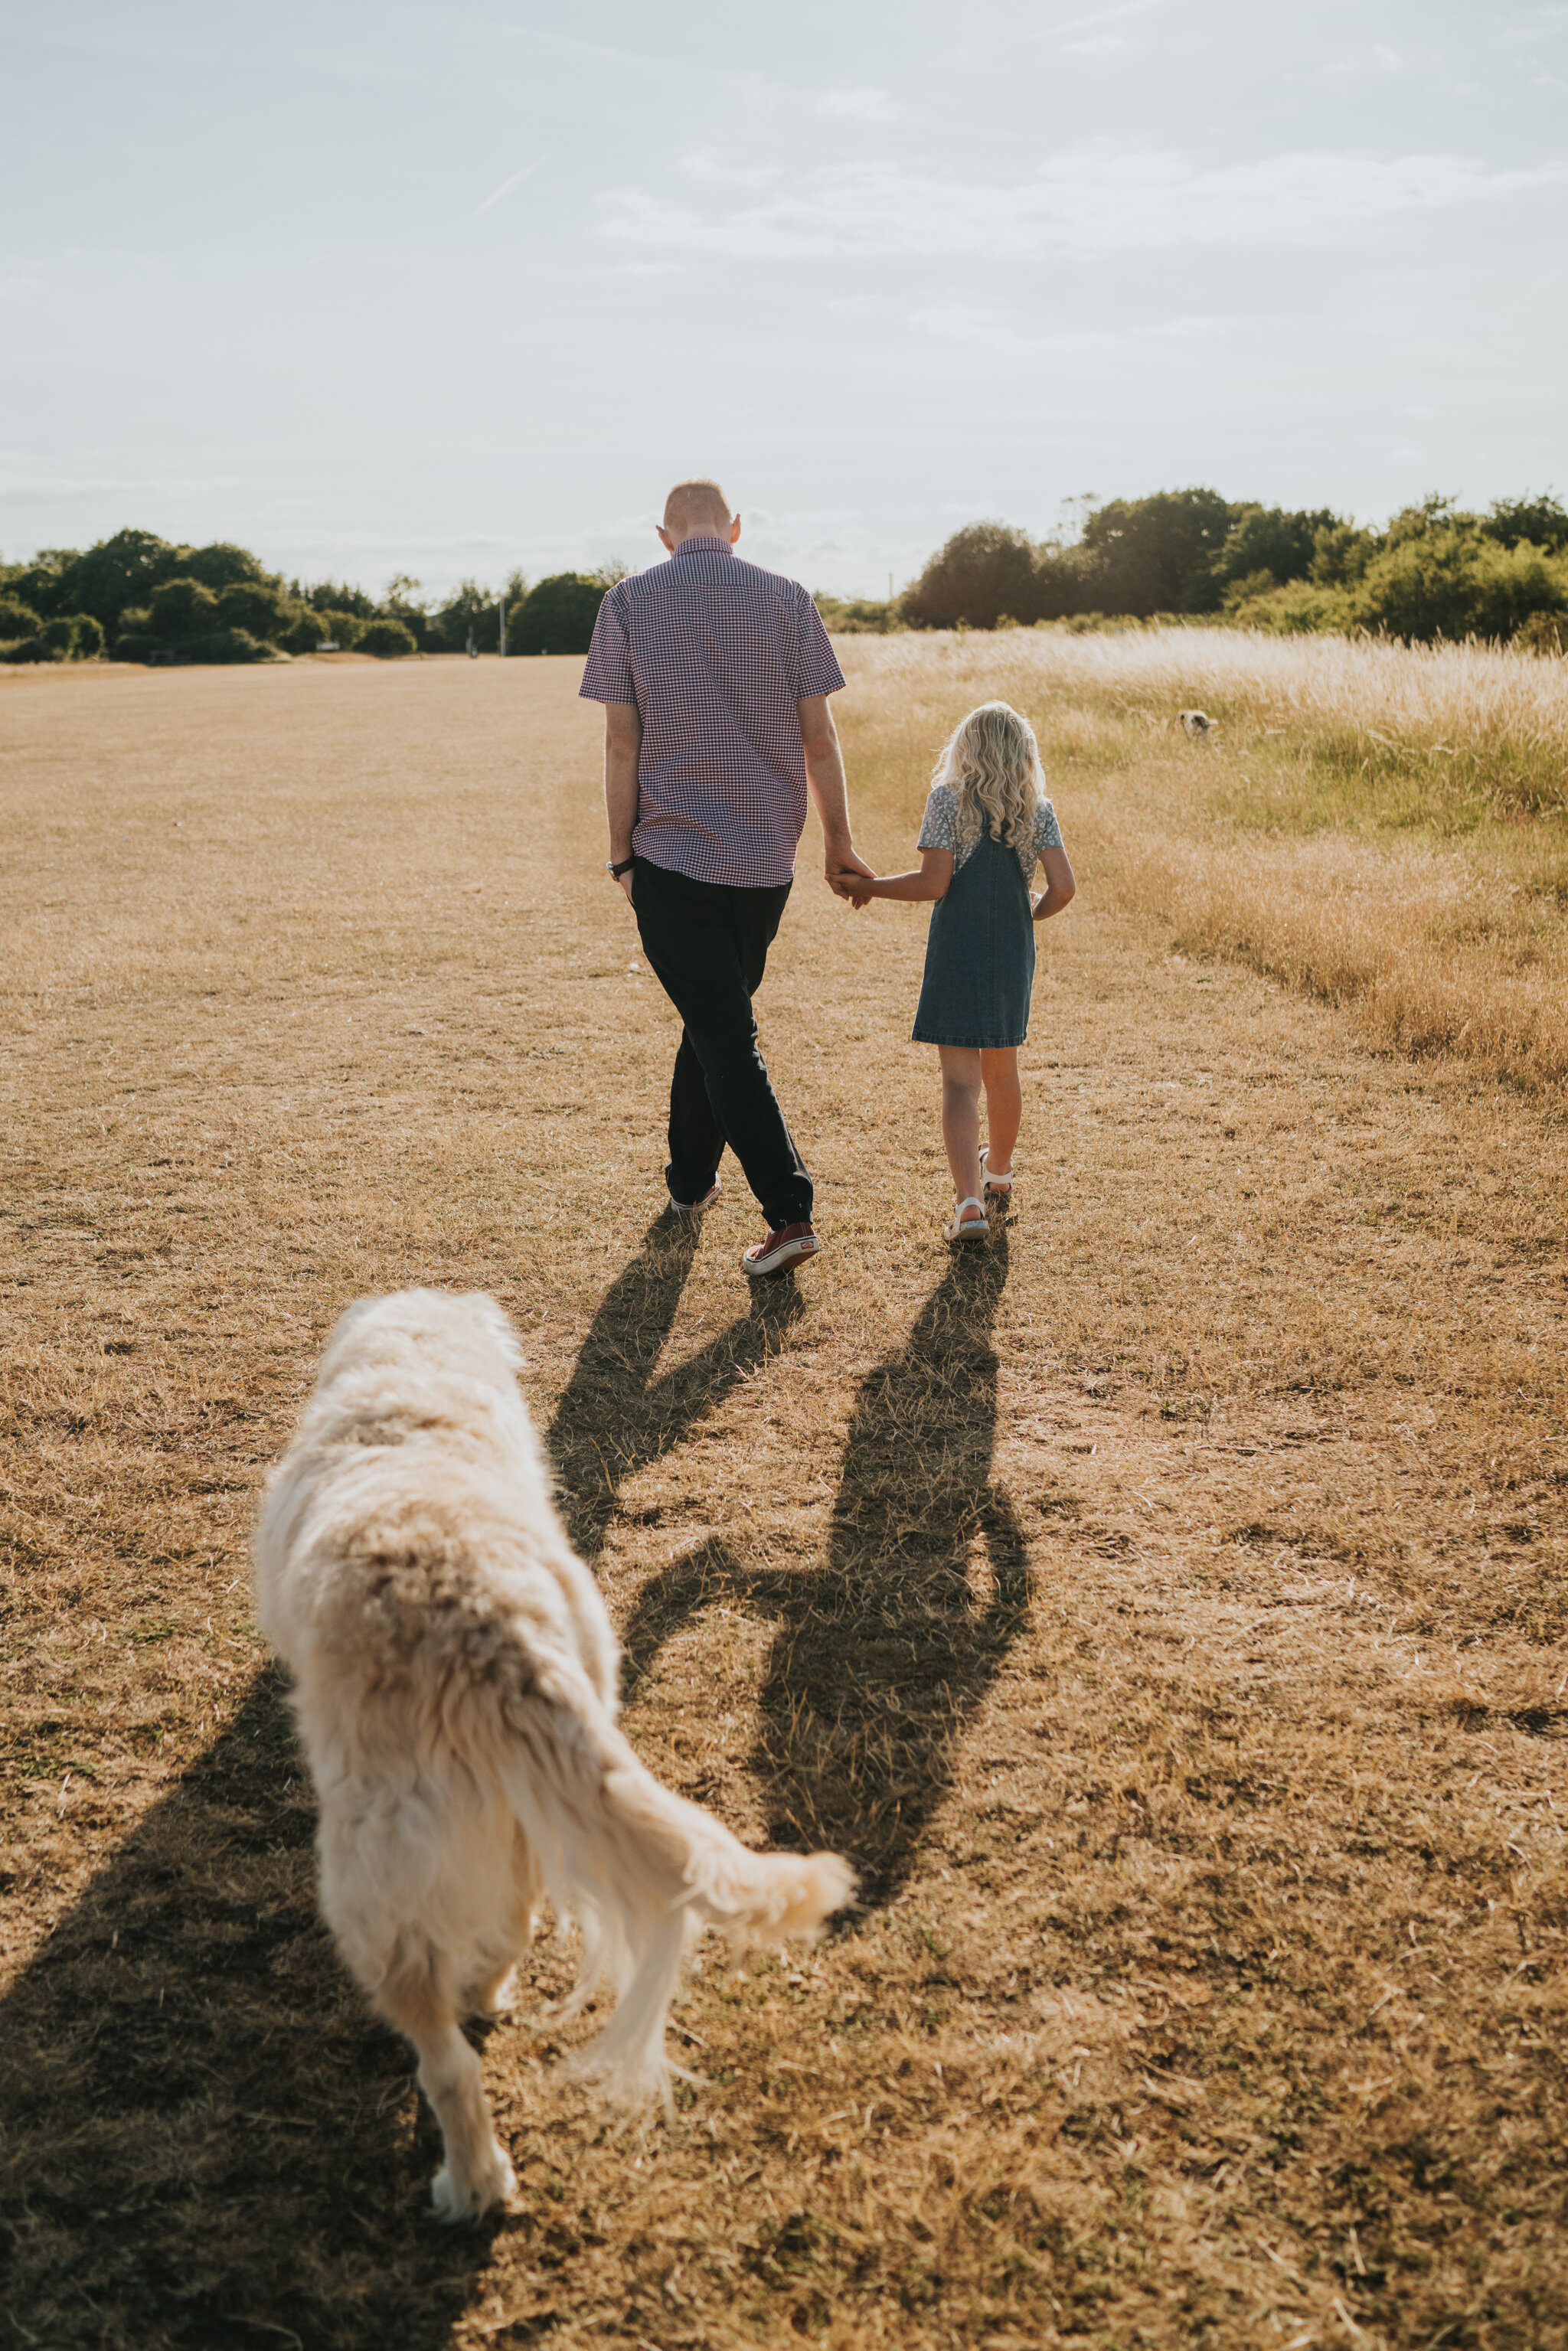 celebratory-beach-family-session-thomson-family-cudmore-grove-east-mersea-grace-elizabeth-colchester-essex-devon-suffolk-and-norfolk-alternative-wedding-and-family-photographer (53 of 53).jpg